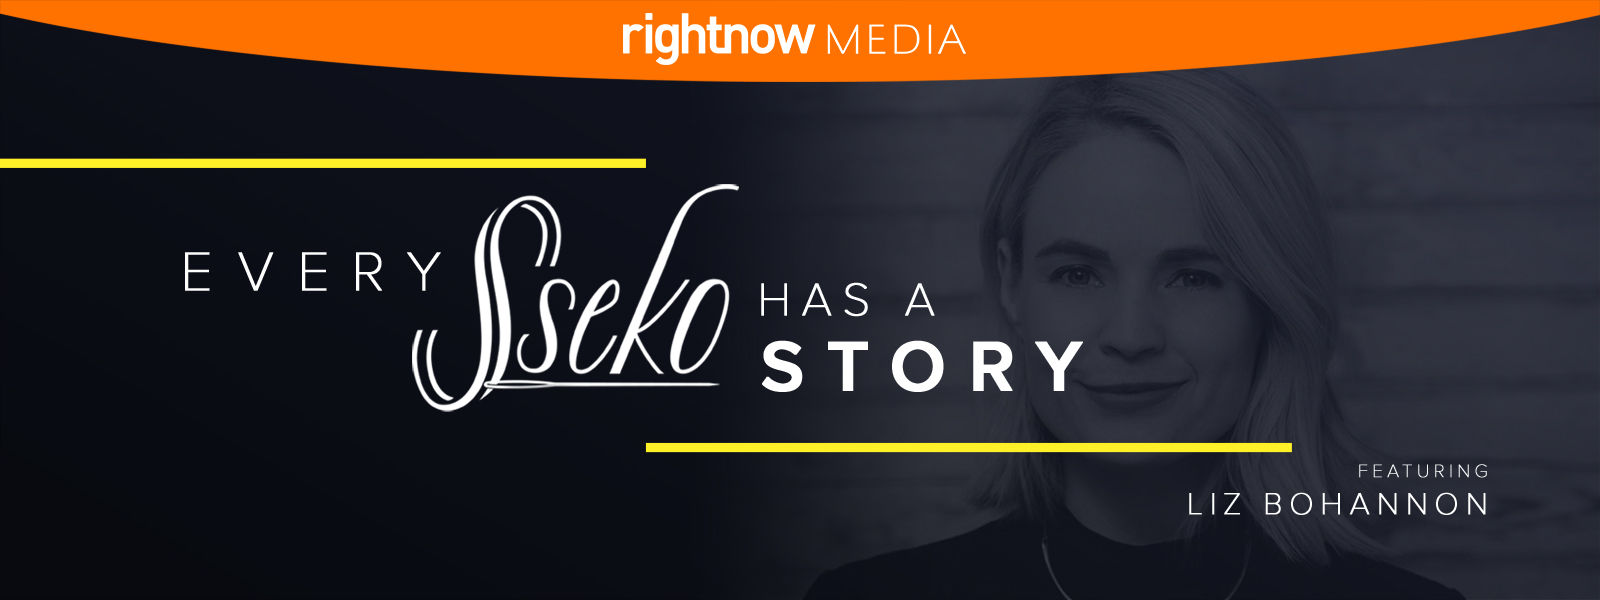 Every Sseko Has a Story